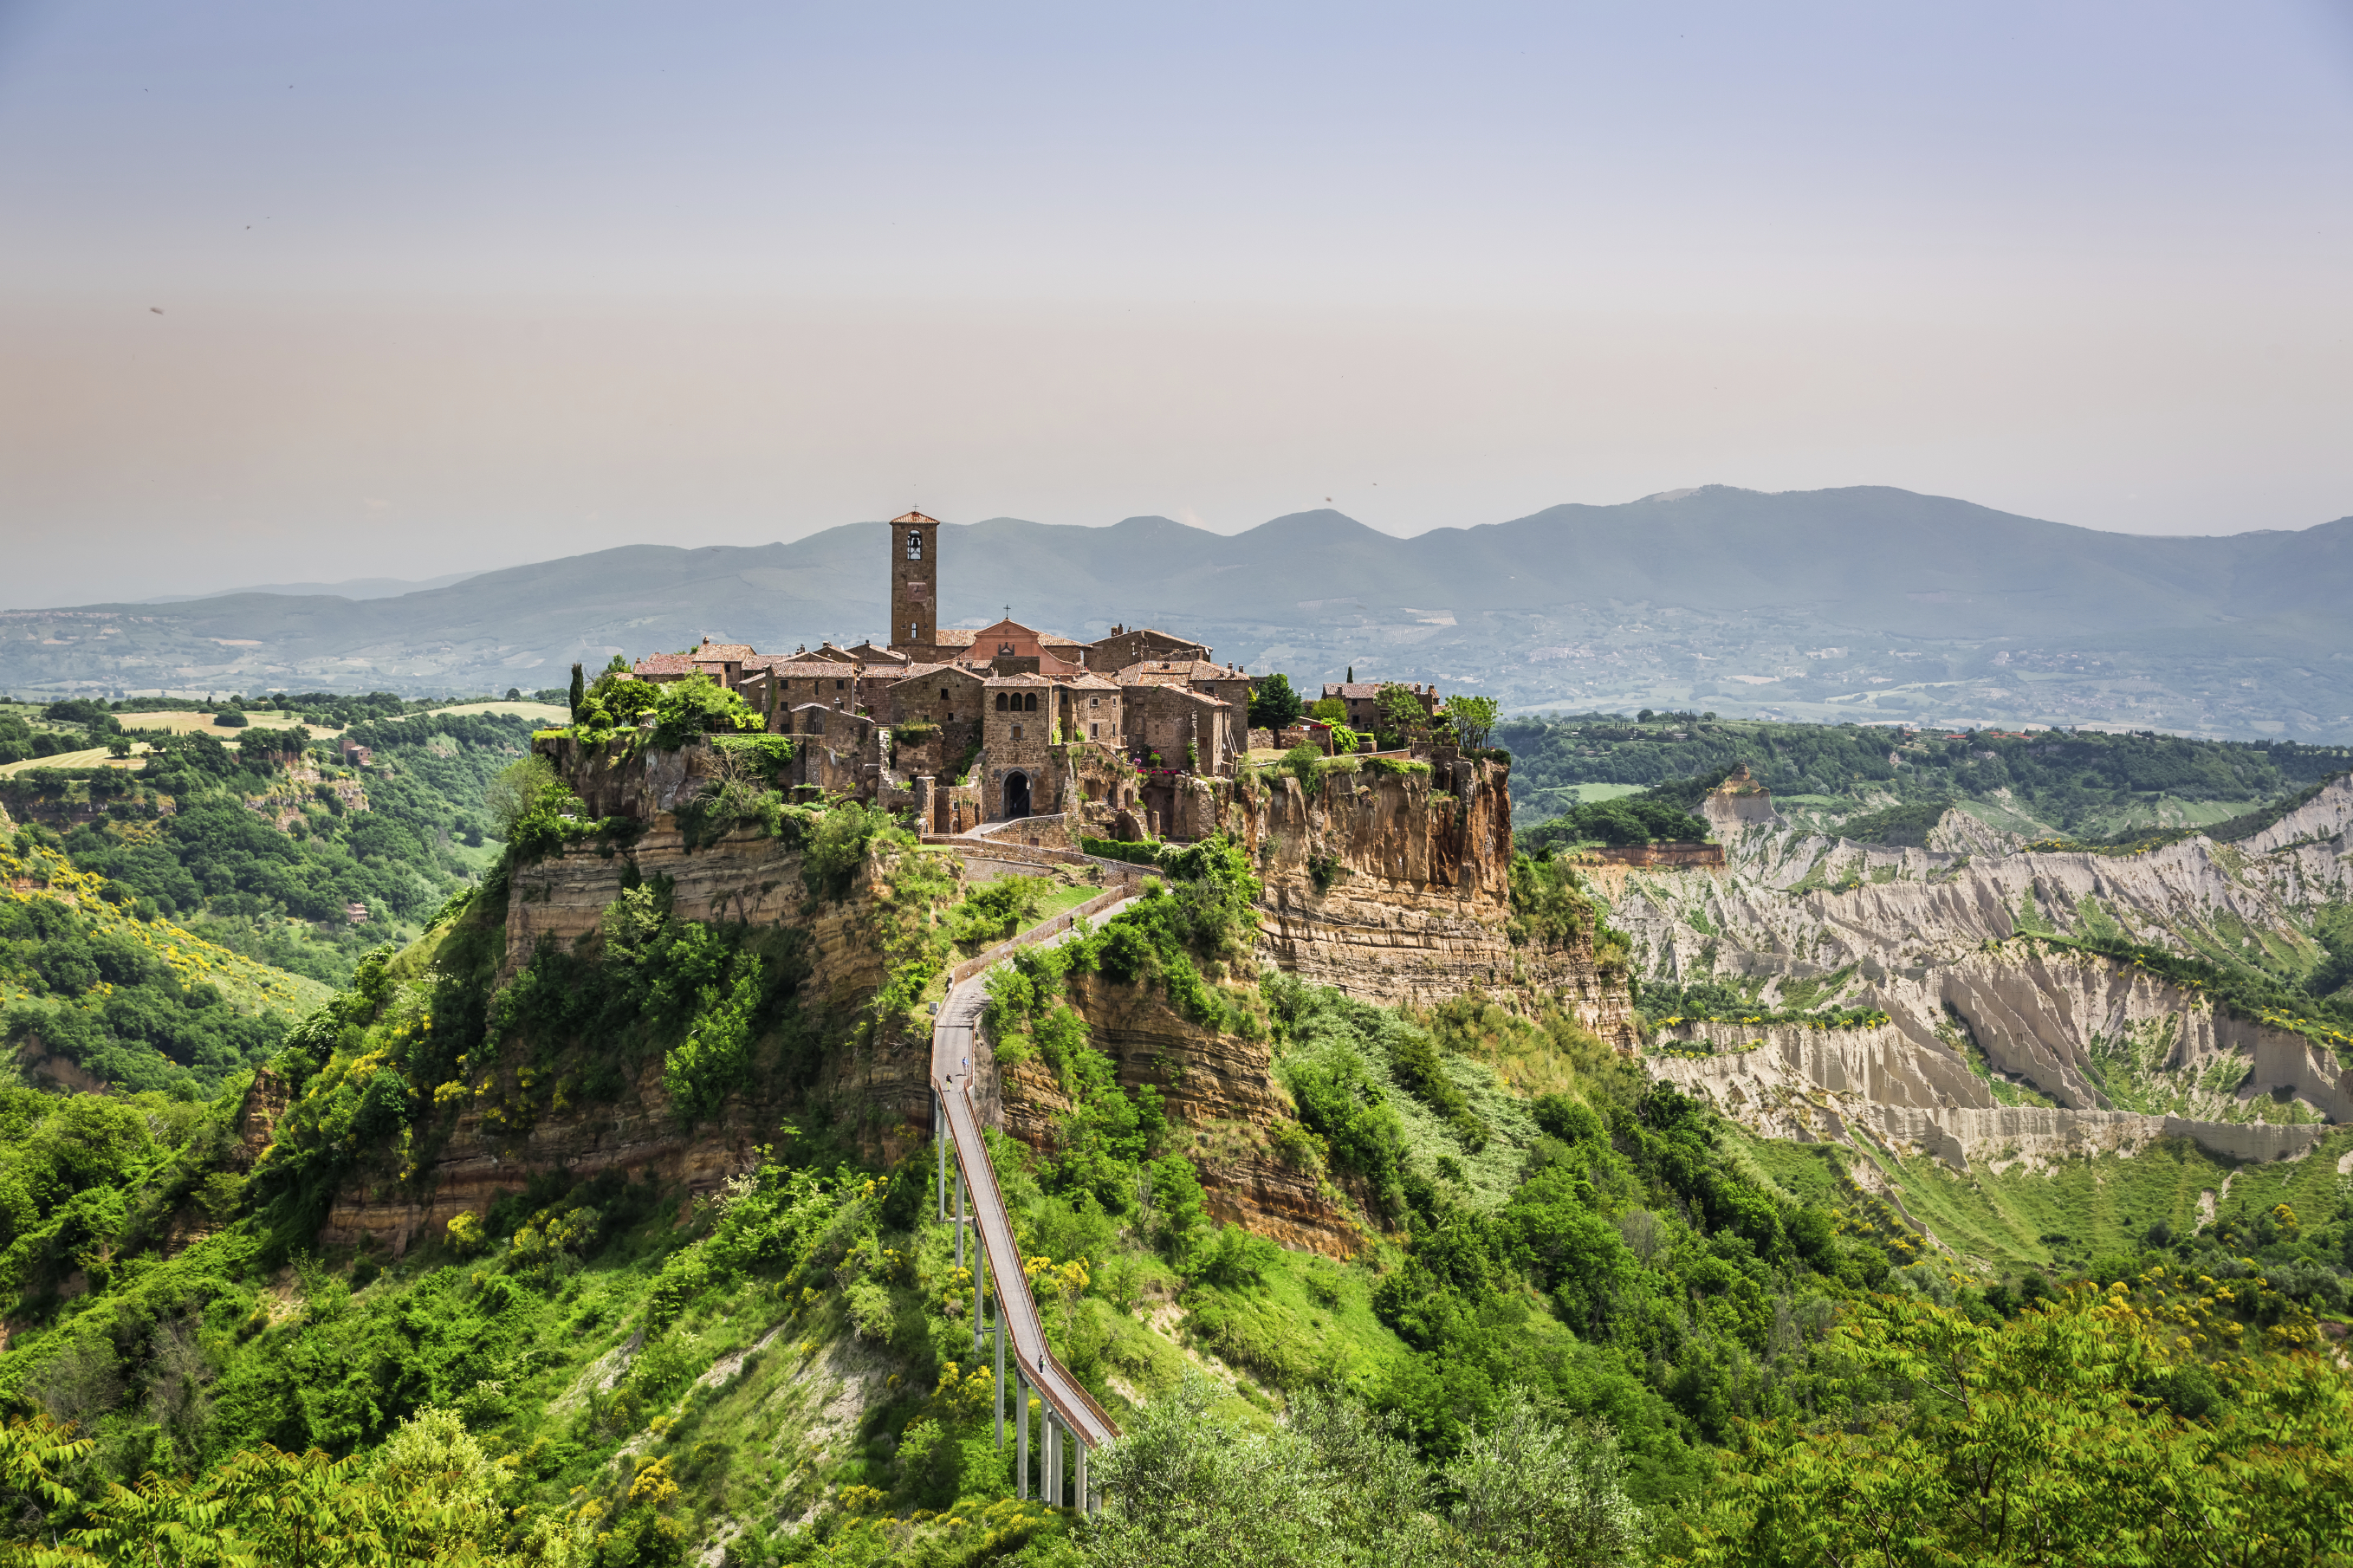 Civita di Bagnoregio, Italy  cottages4you blog ...